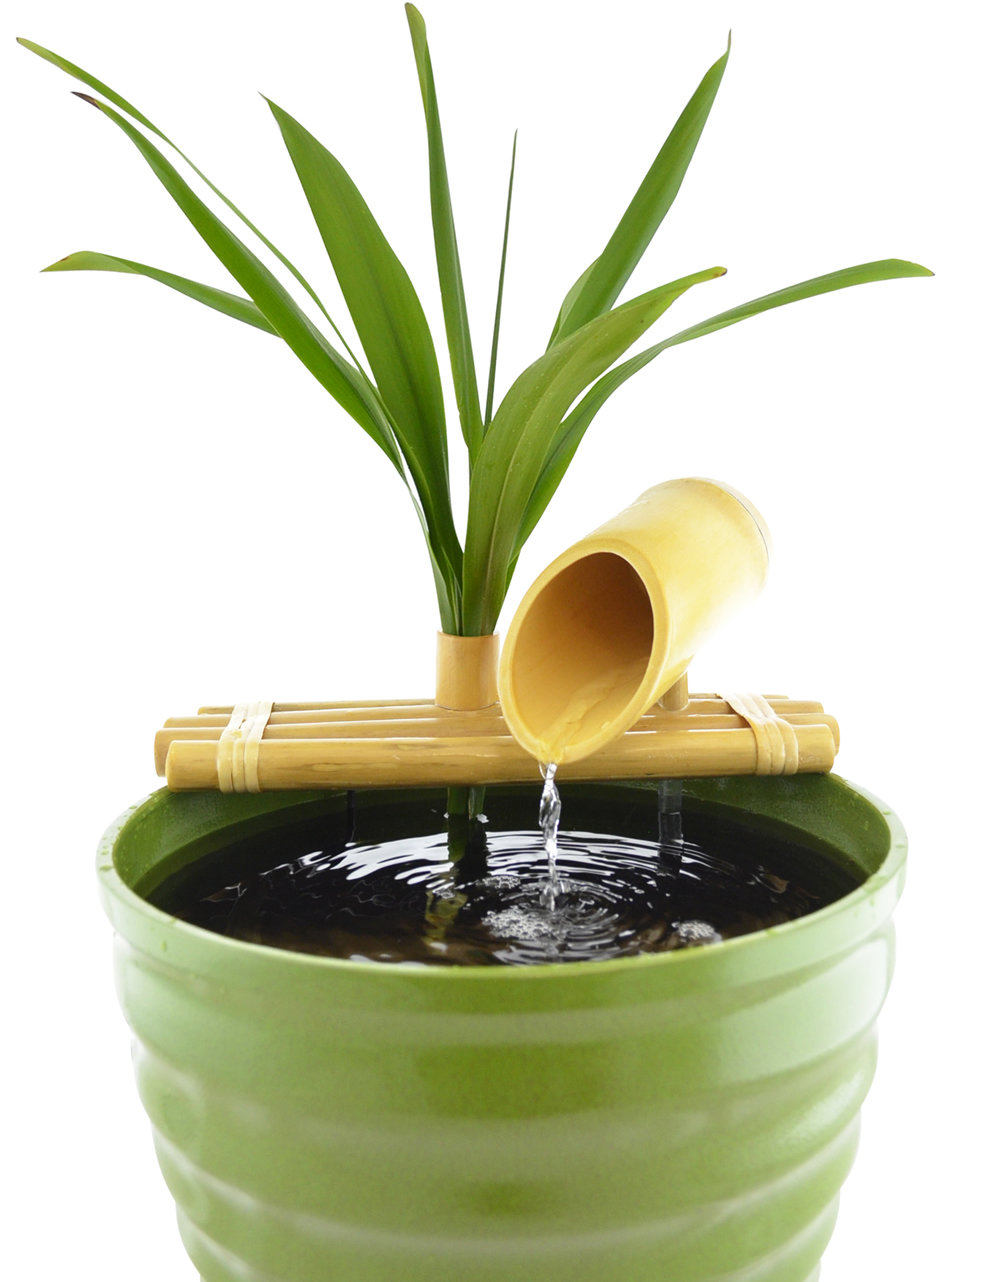 LIFEGARD® Bamboo Fountain Kits